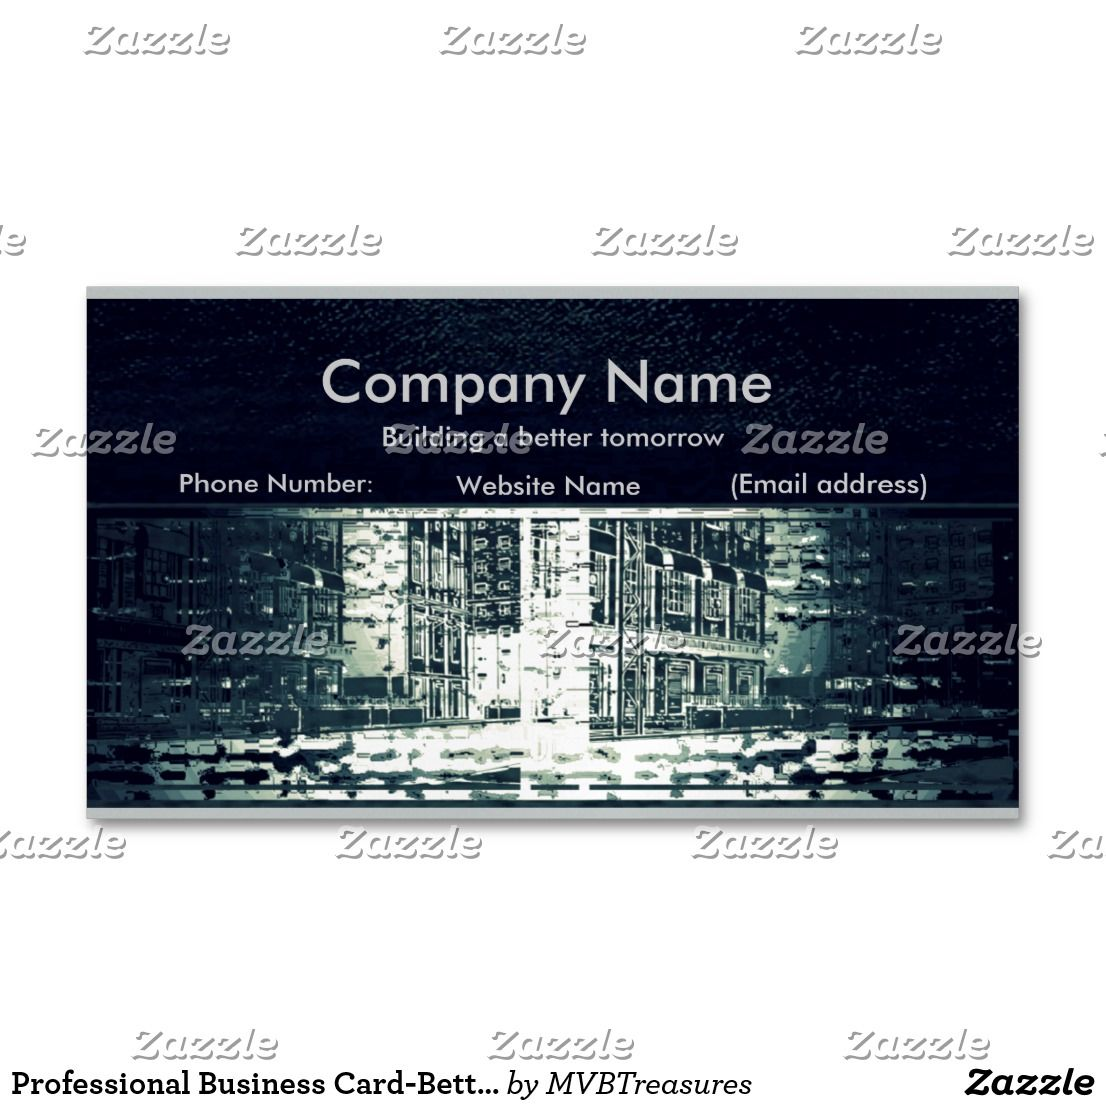 professional business card better tomorrow6 magnetic business card magnetic business cards business cards and business - Business Cards Tomorrow